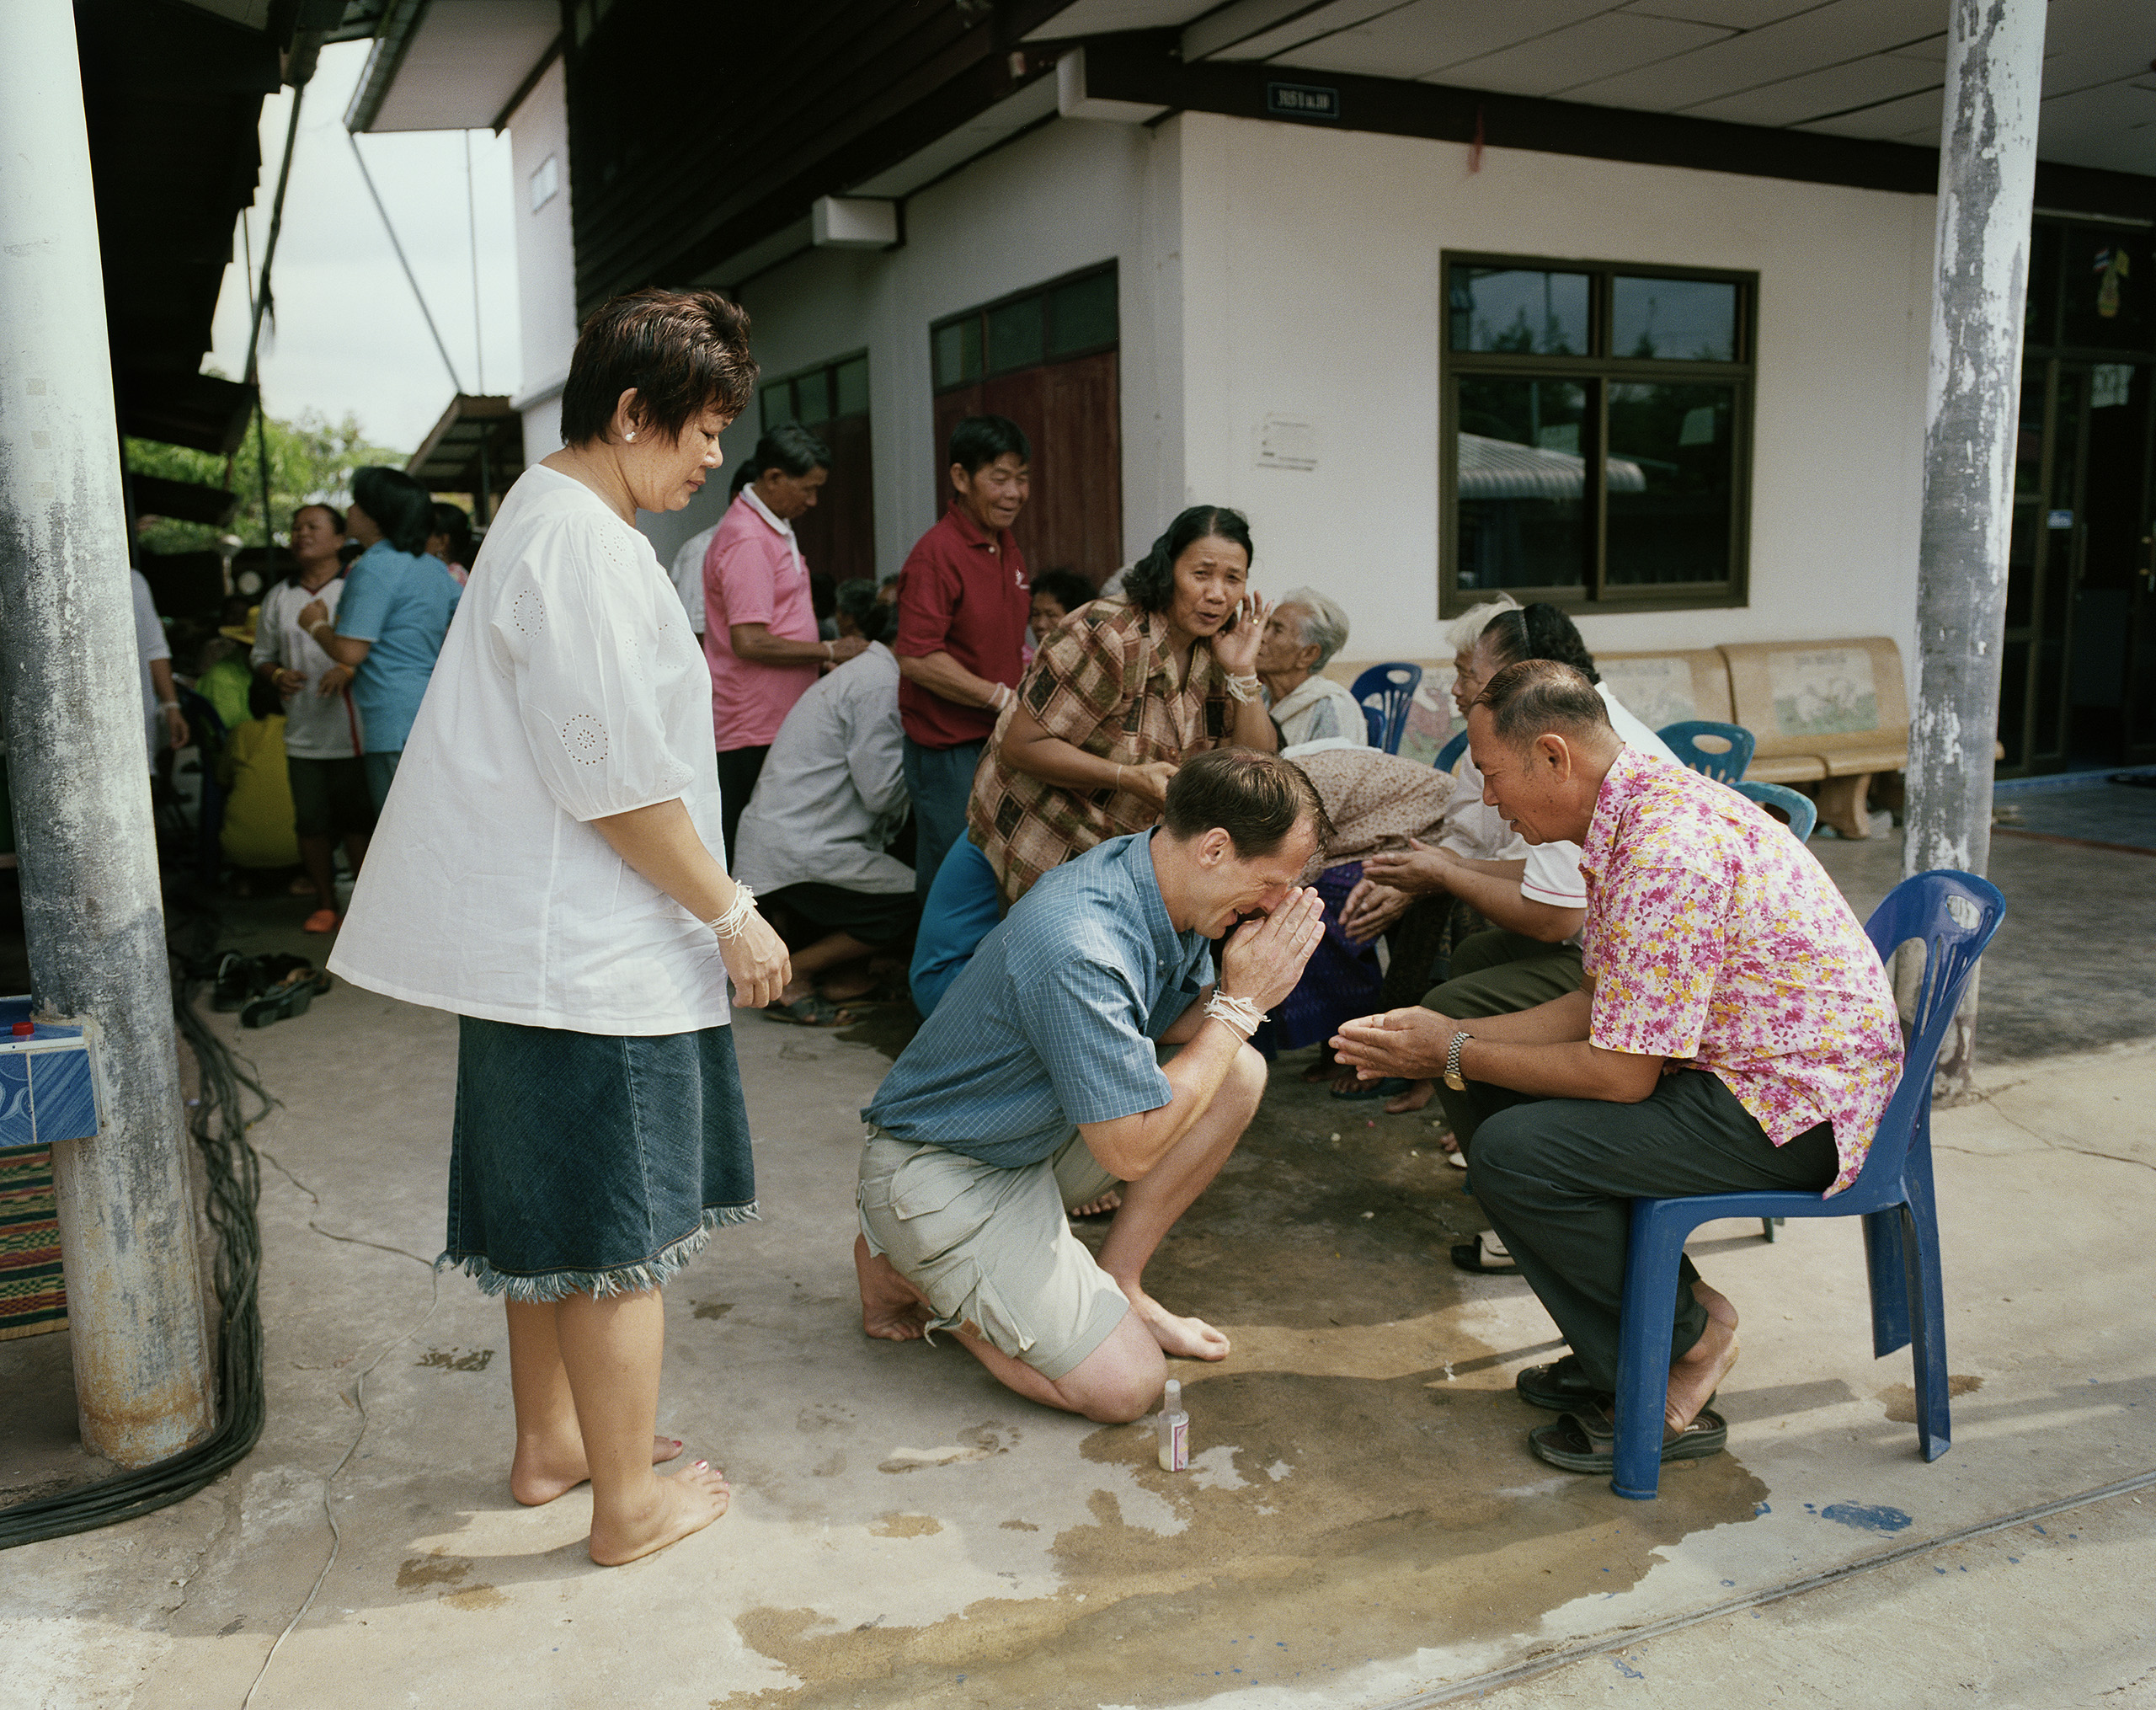 Pereric and Sombat pay their respects to the elders of the neighborhood in conjunction with Songkran, the Thai New Year, Kaeng Khro 2010.